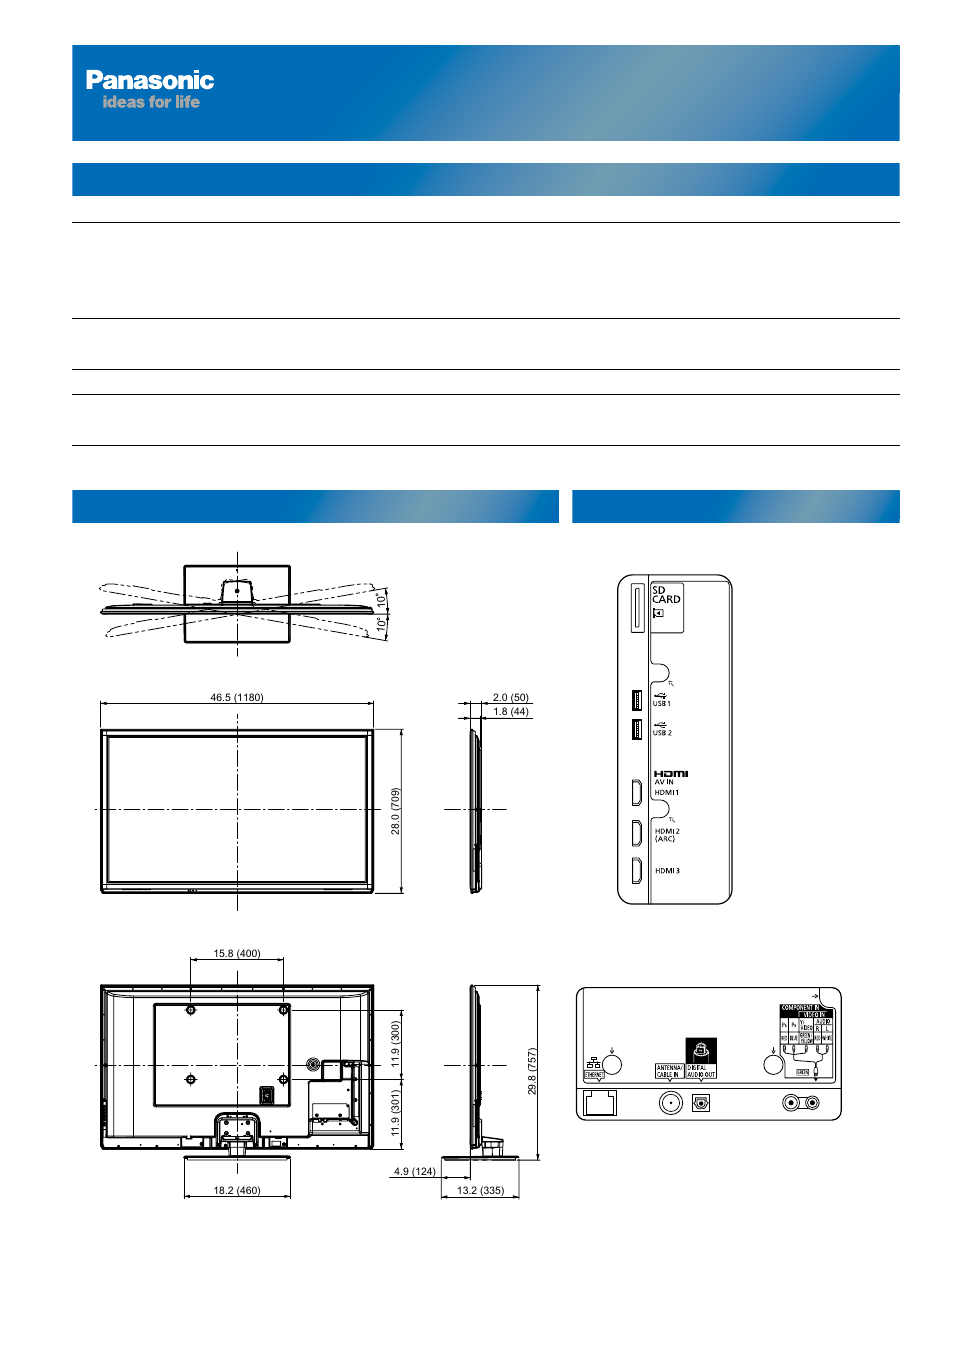 detailed specification sheet for tc p50st50 tc p50st50 rh manualsdir com panasonic viera tc-p60st50 manual Panasonic Tc- 58Ax800u Wiring